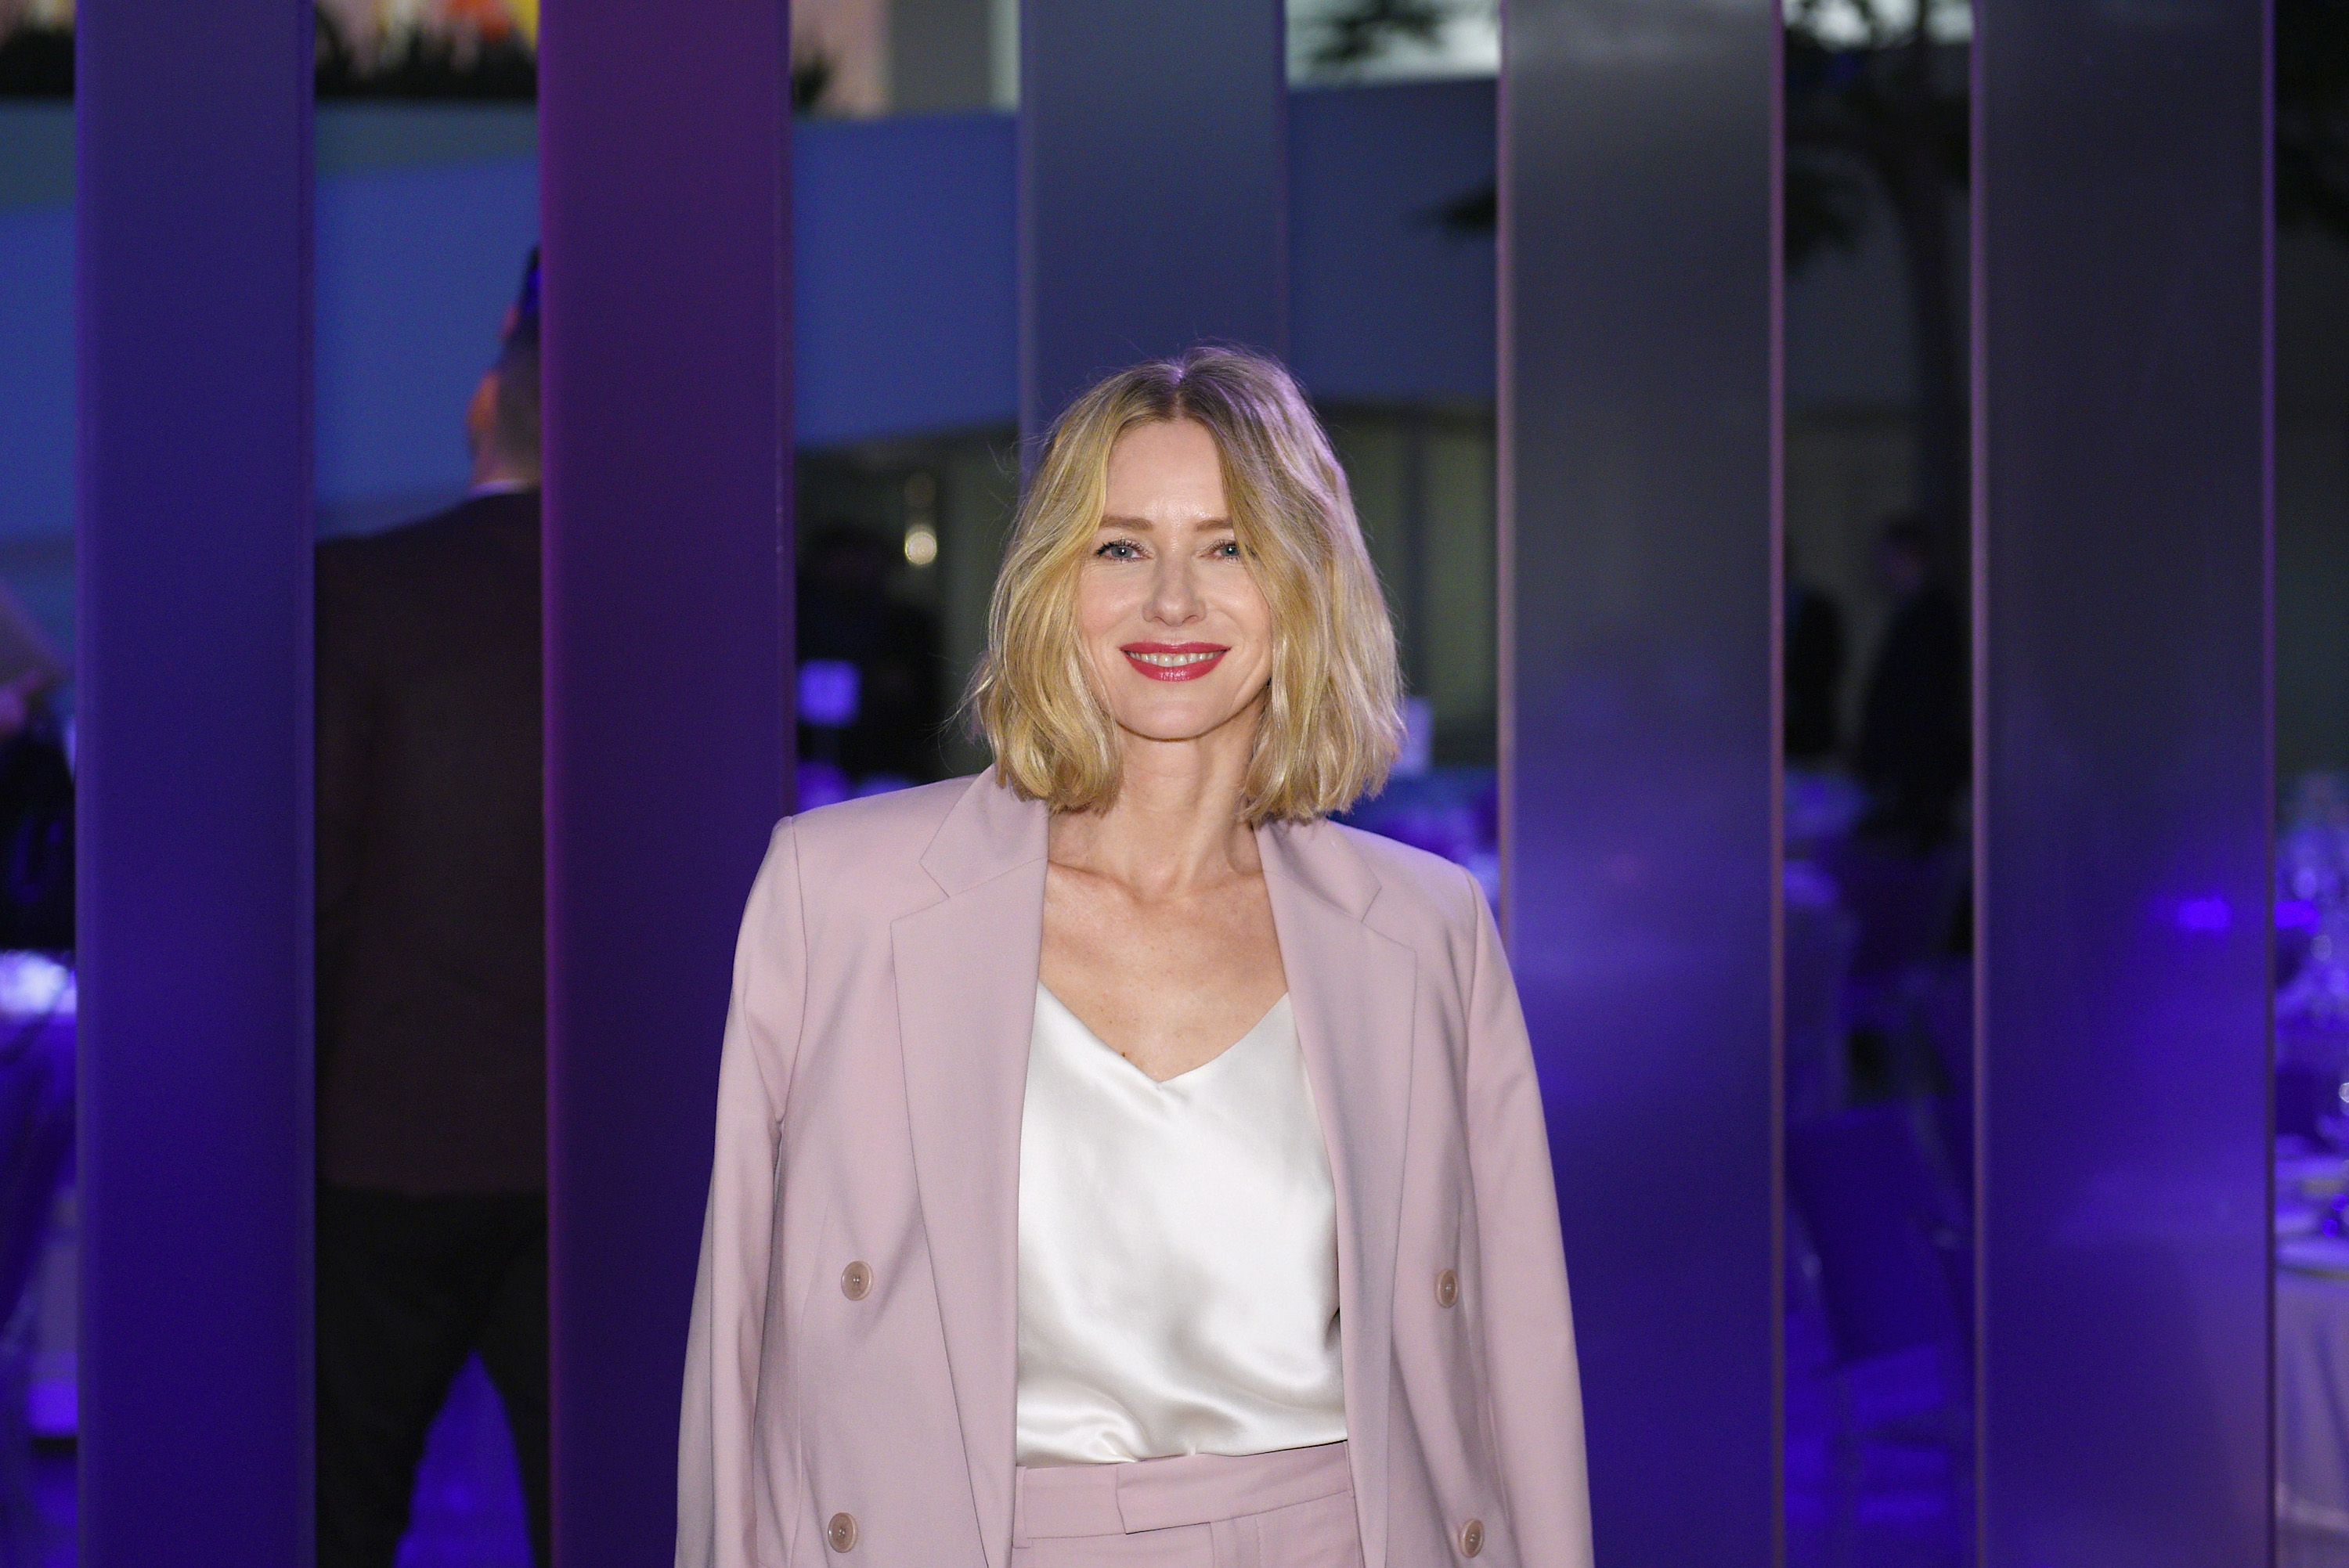 Naomi Watts Hugo Boss Prize 2018 Artists Dinner